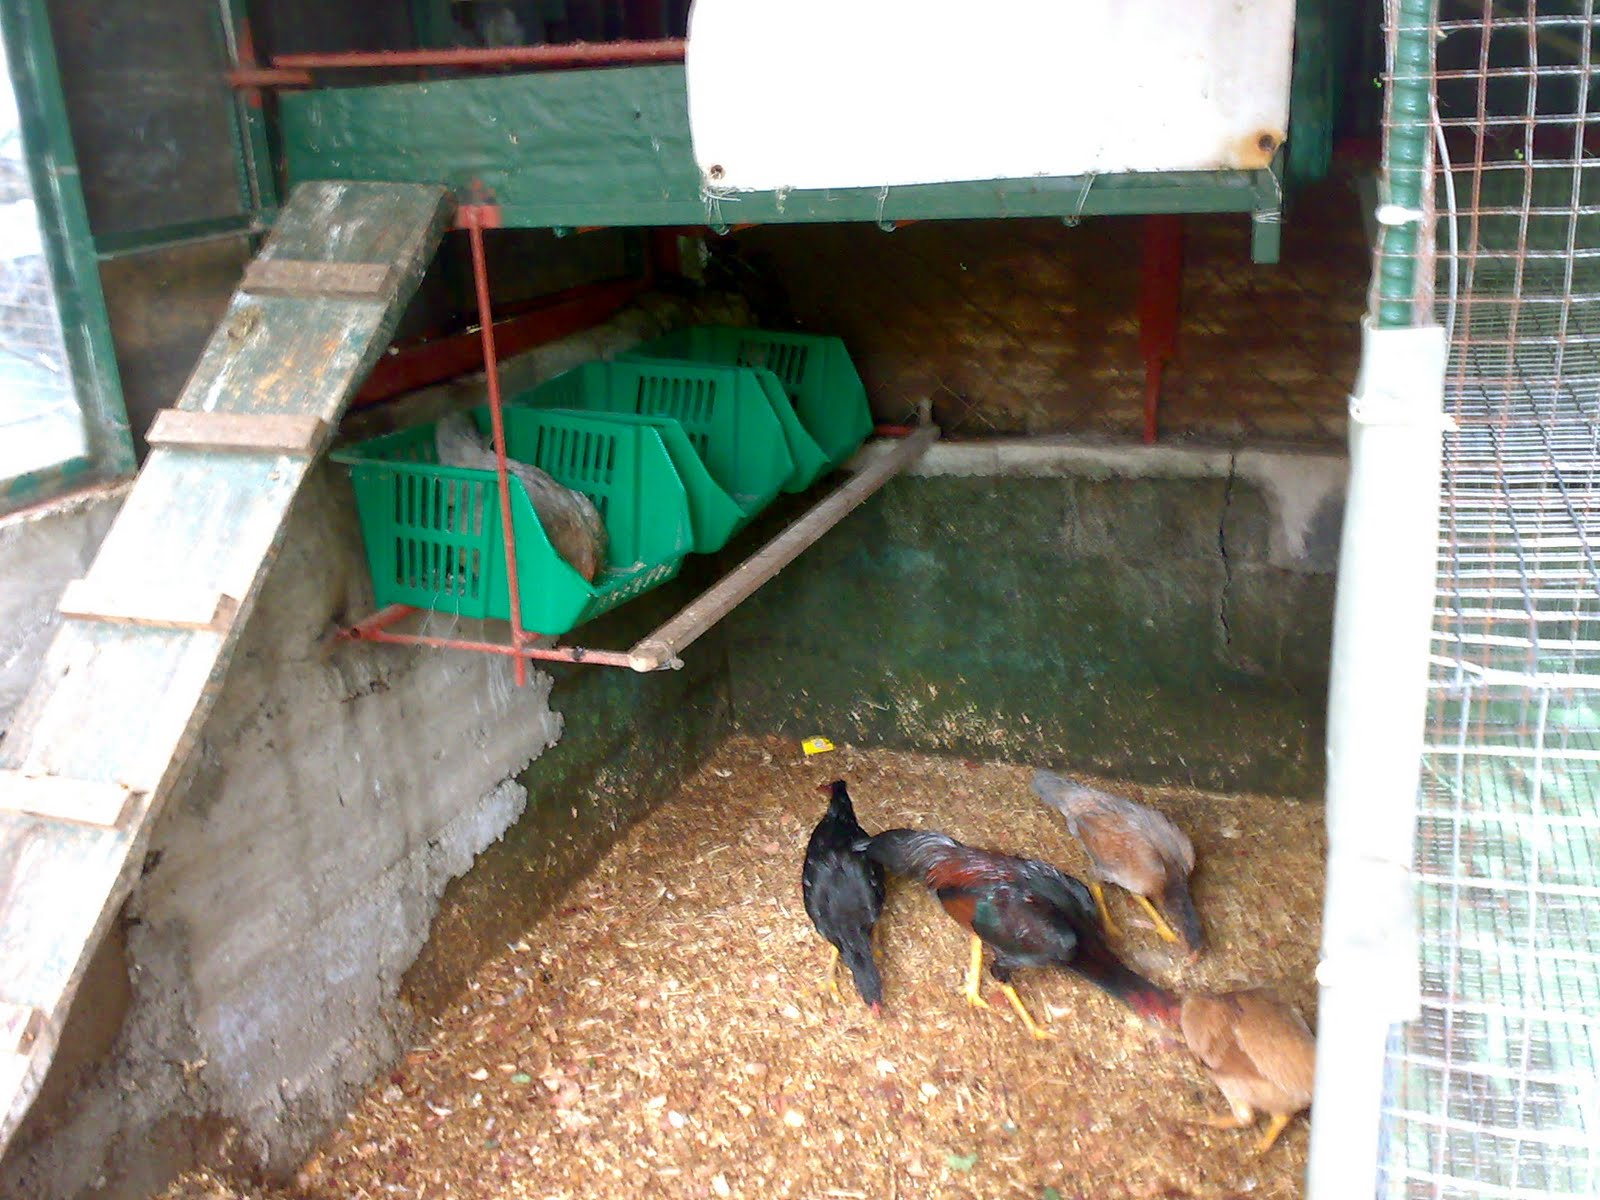 This Pic Is Inside The Coop With Wood Chips As Litter Over Concrete Floor